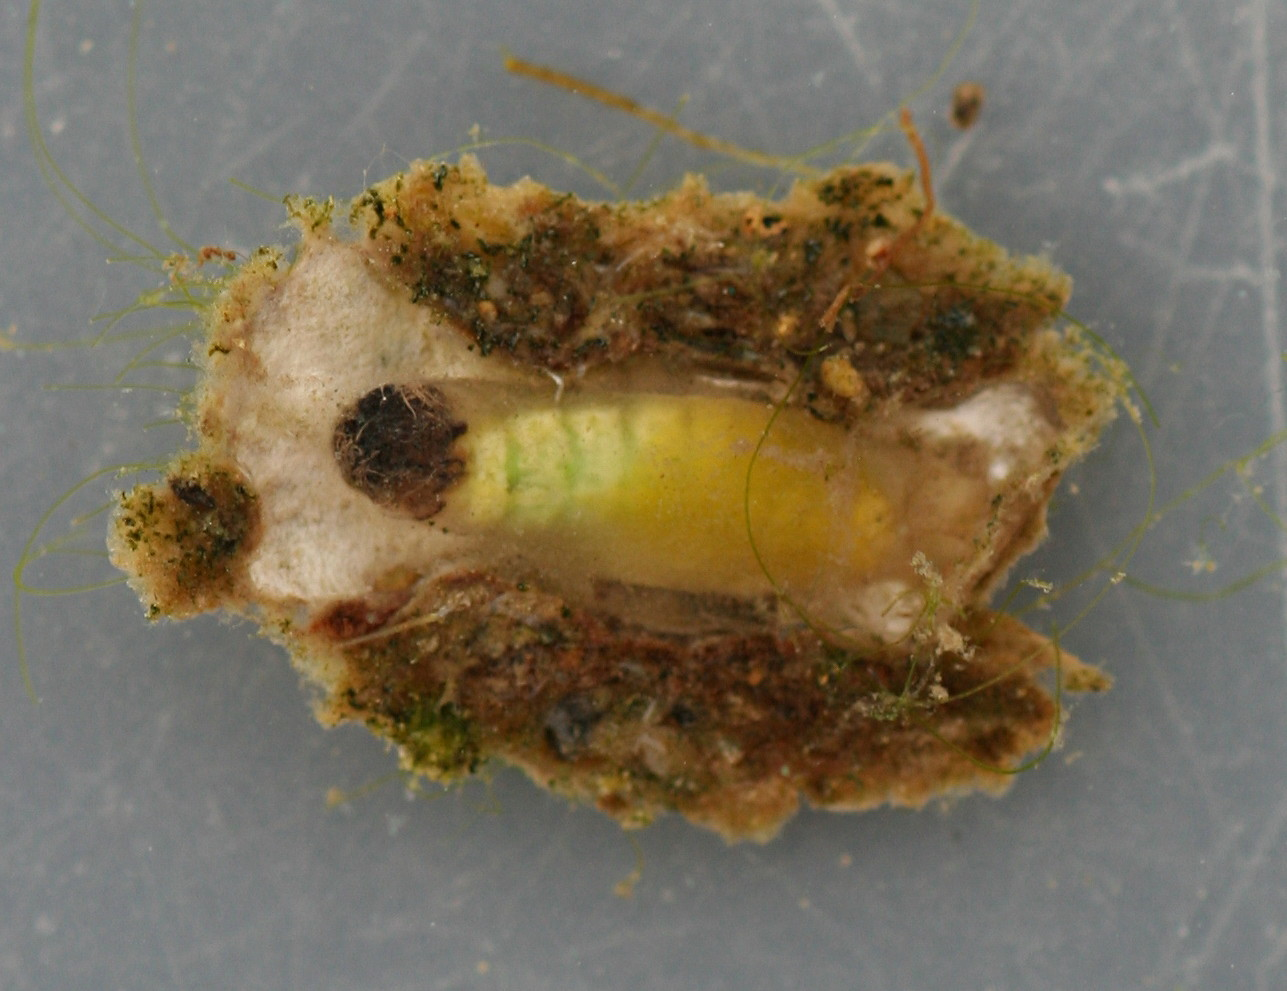 Early stage pupae and case. Pupa approximately 9mm. In alcohol. Ventral view.